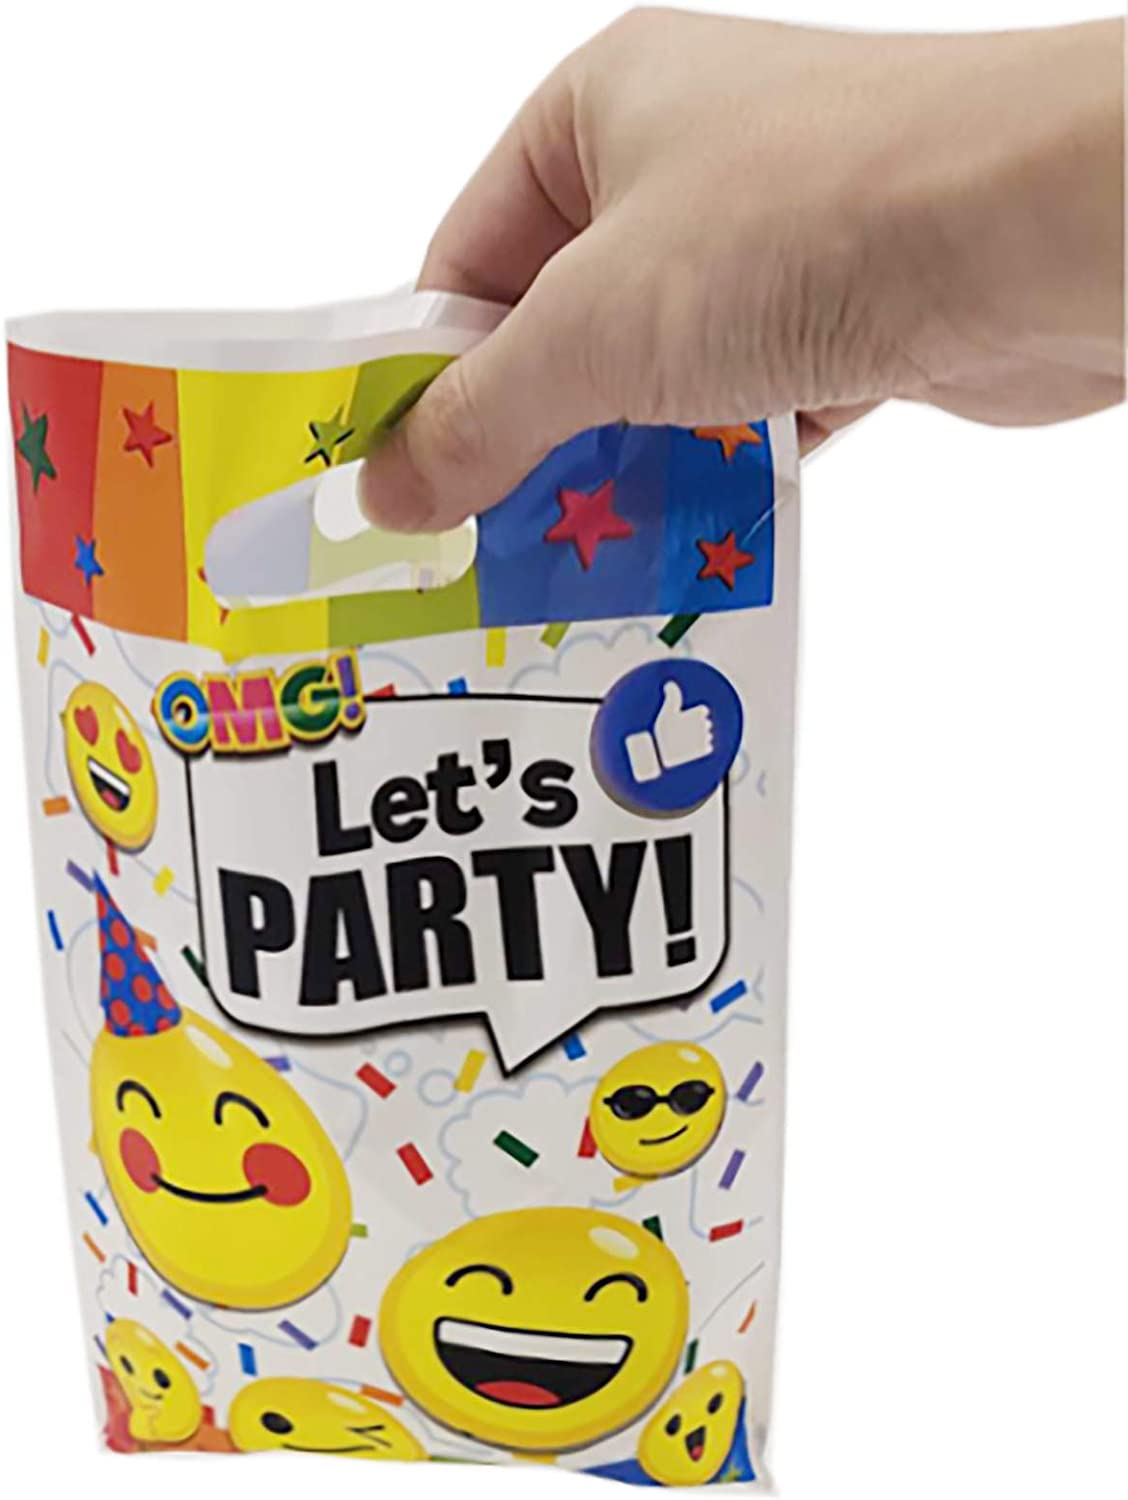 30 Packs Emoji Party Gift Bags Birthday Party Bags for Kids Emoji Themed Party Decorations,Emoji Time Birthday Party Supplies Favors and Baby Shower